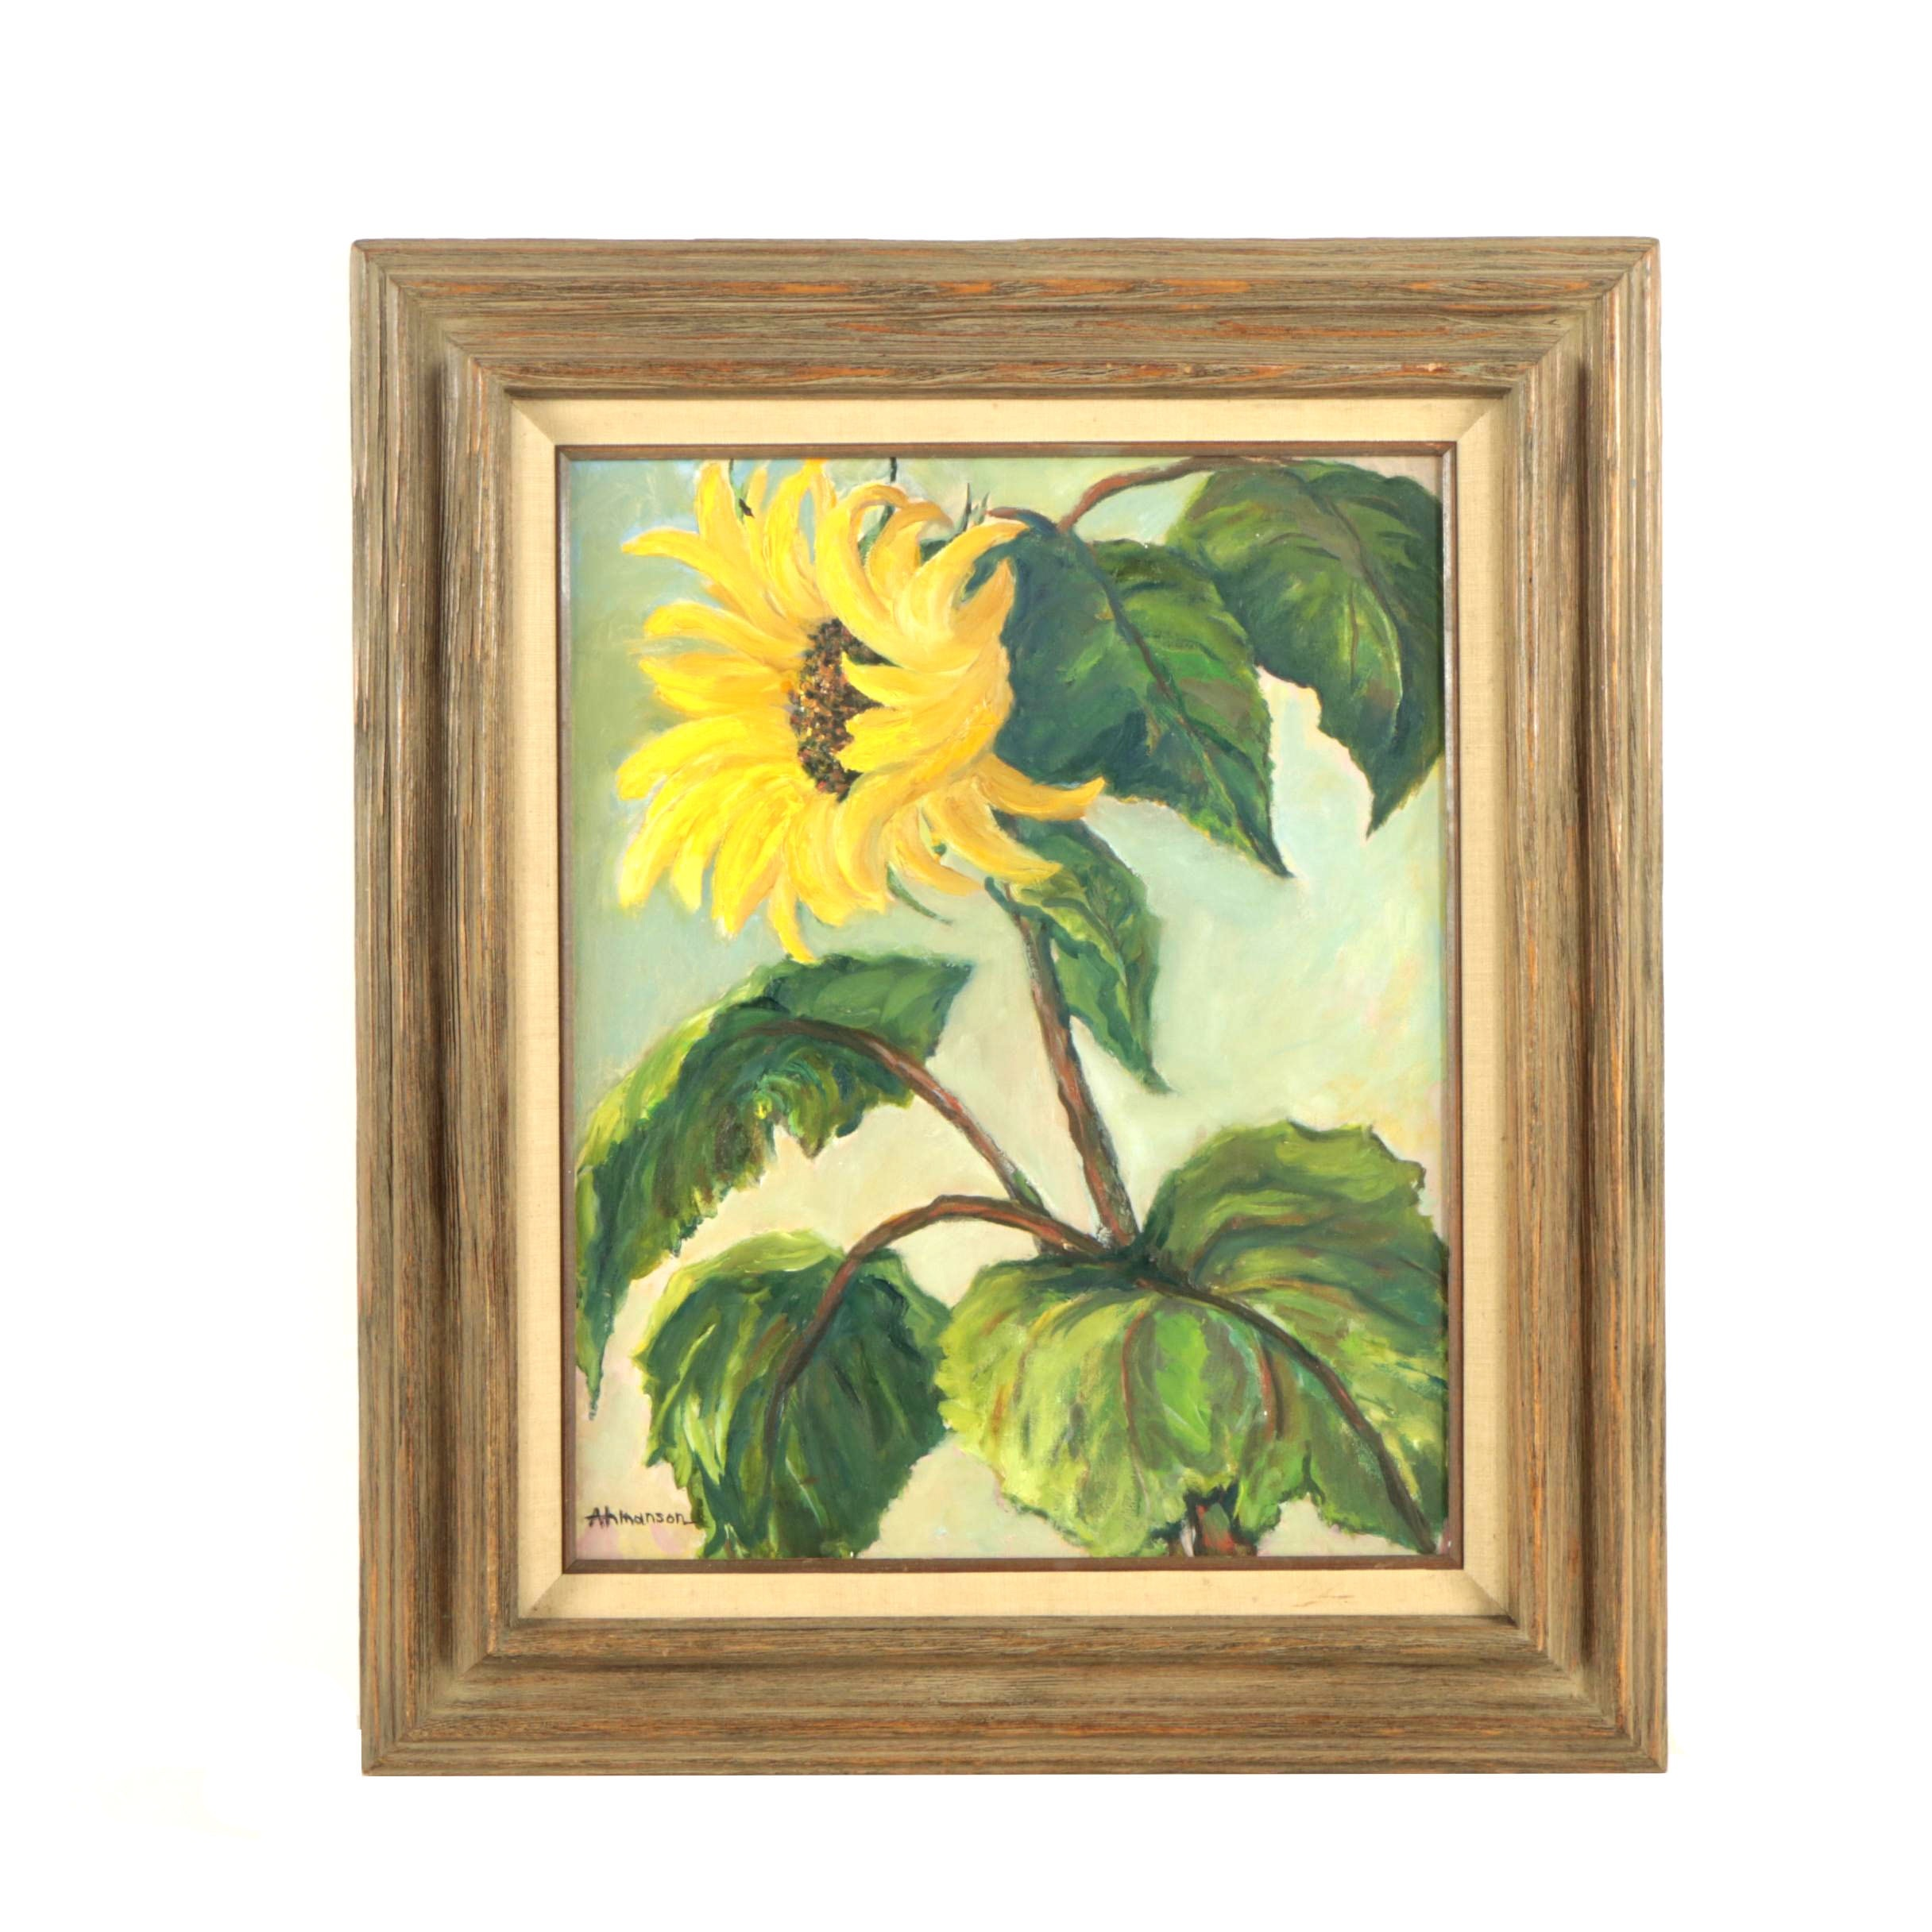 Ahmanson Oil Painting of Sunflower